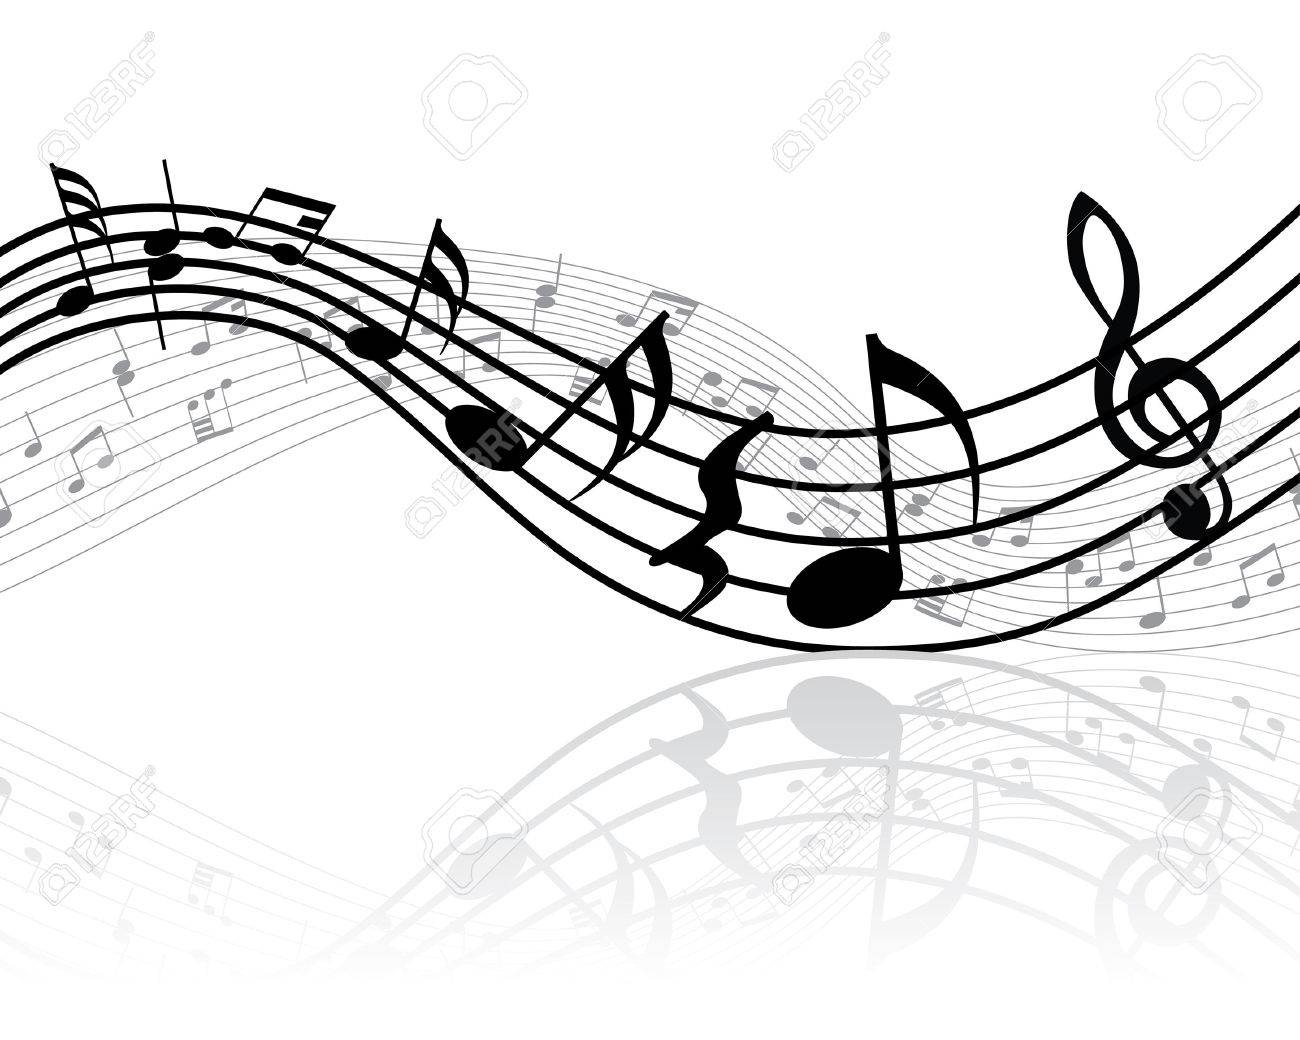 Grunge vector musical notes background for design use Stock Vector - 4616442